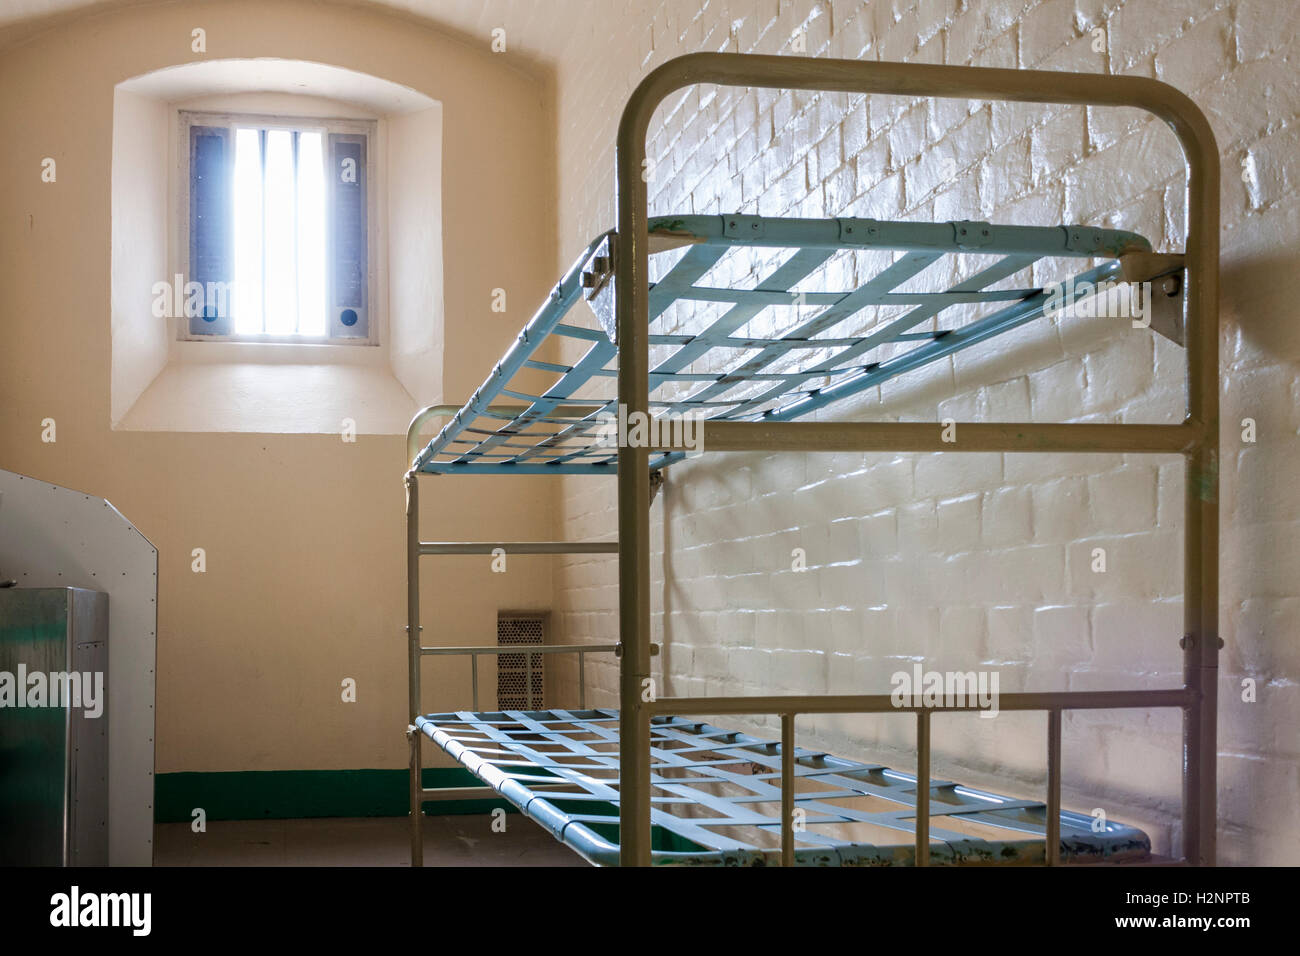 Empty Prison Cell in Reading Prison, Reading, Berkshire, England, GB, UK. Stock Photo